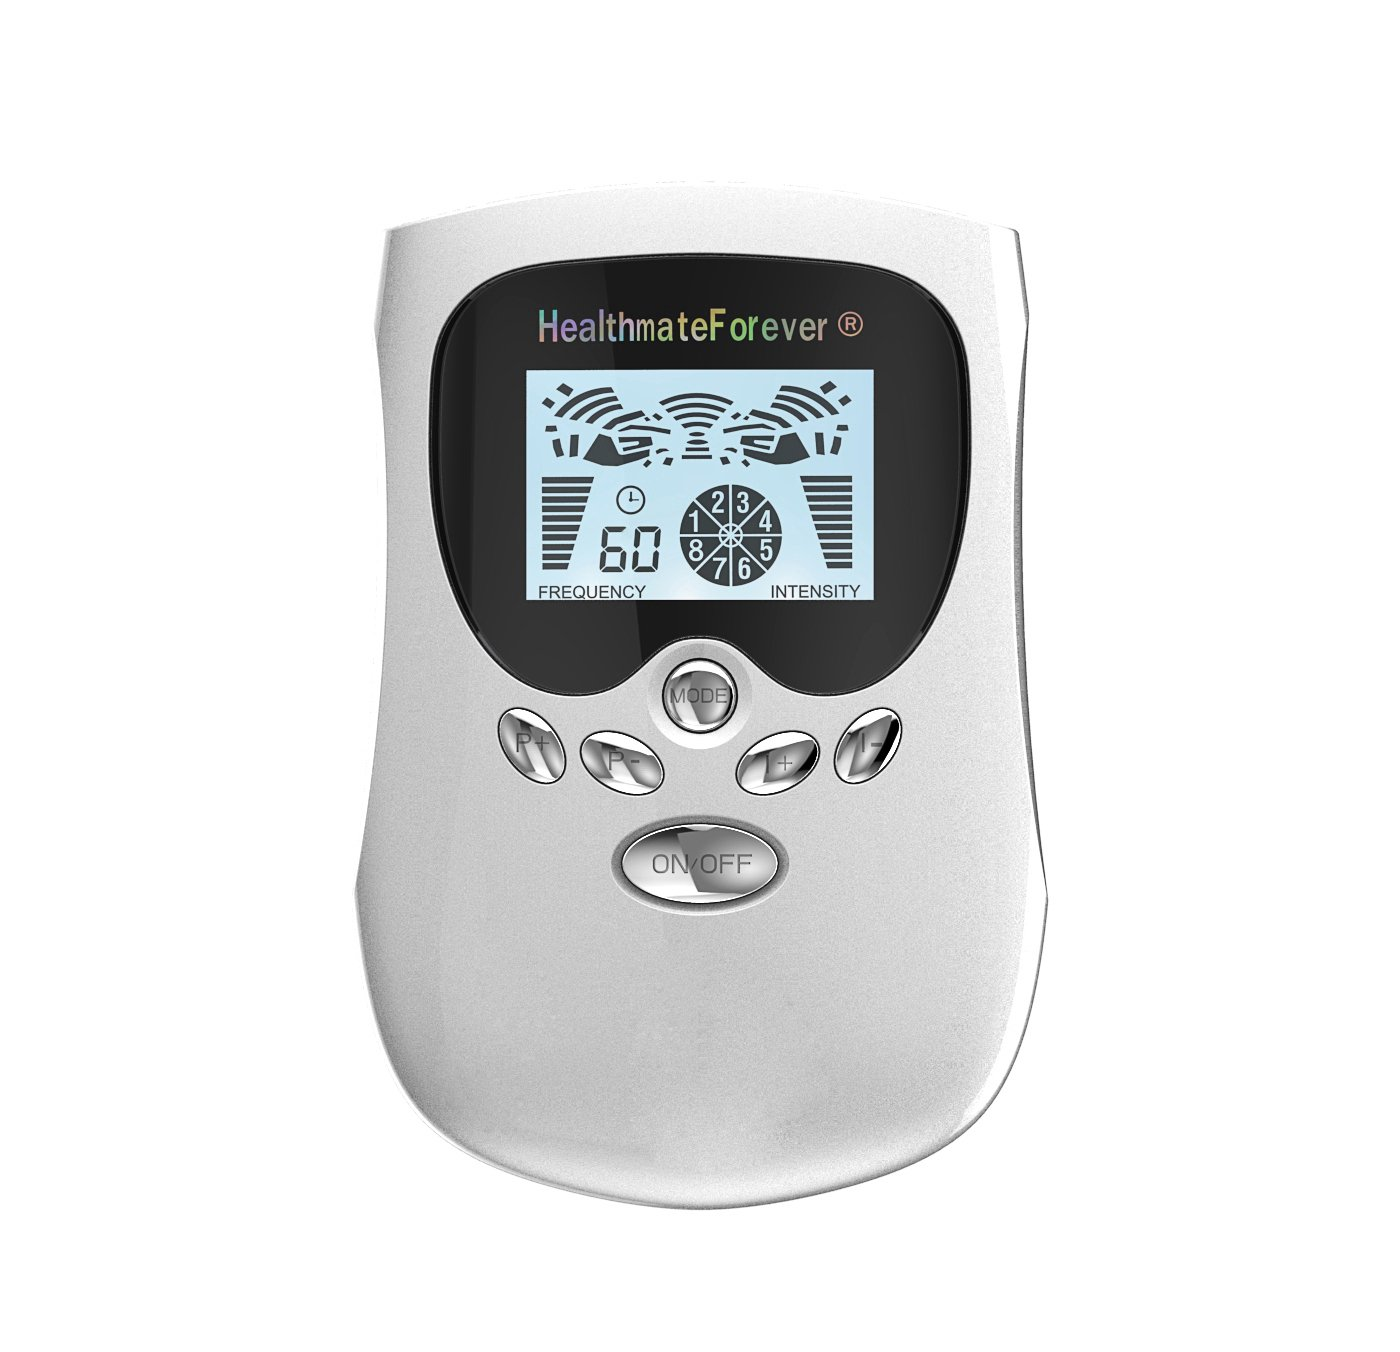 PM8 HealthmateForever TENS Unit Electrical Muscle Stimulator Silver